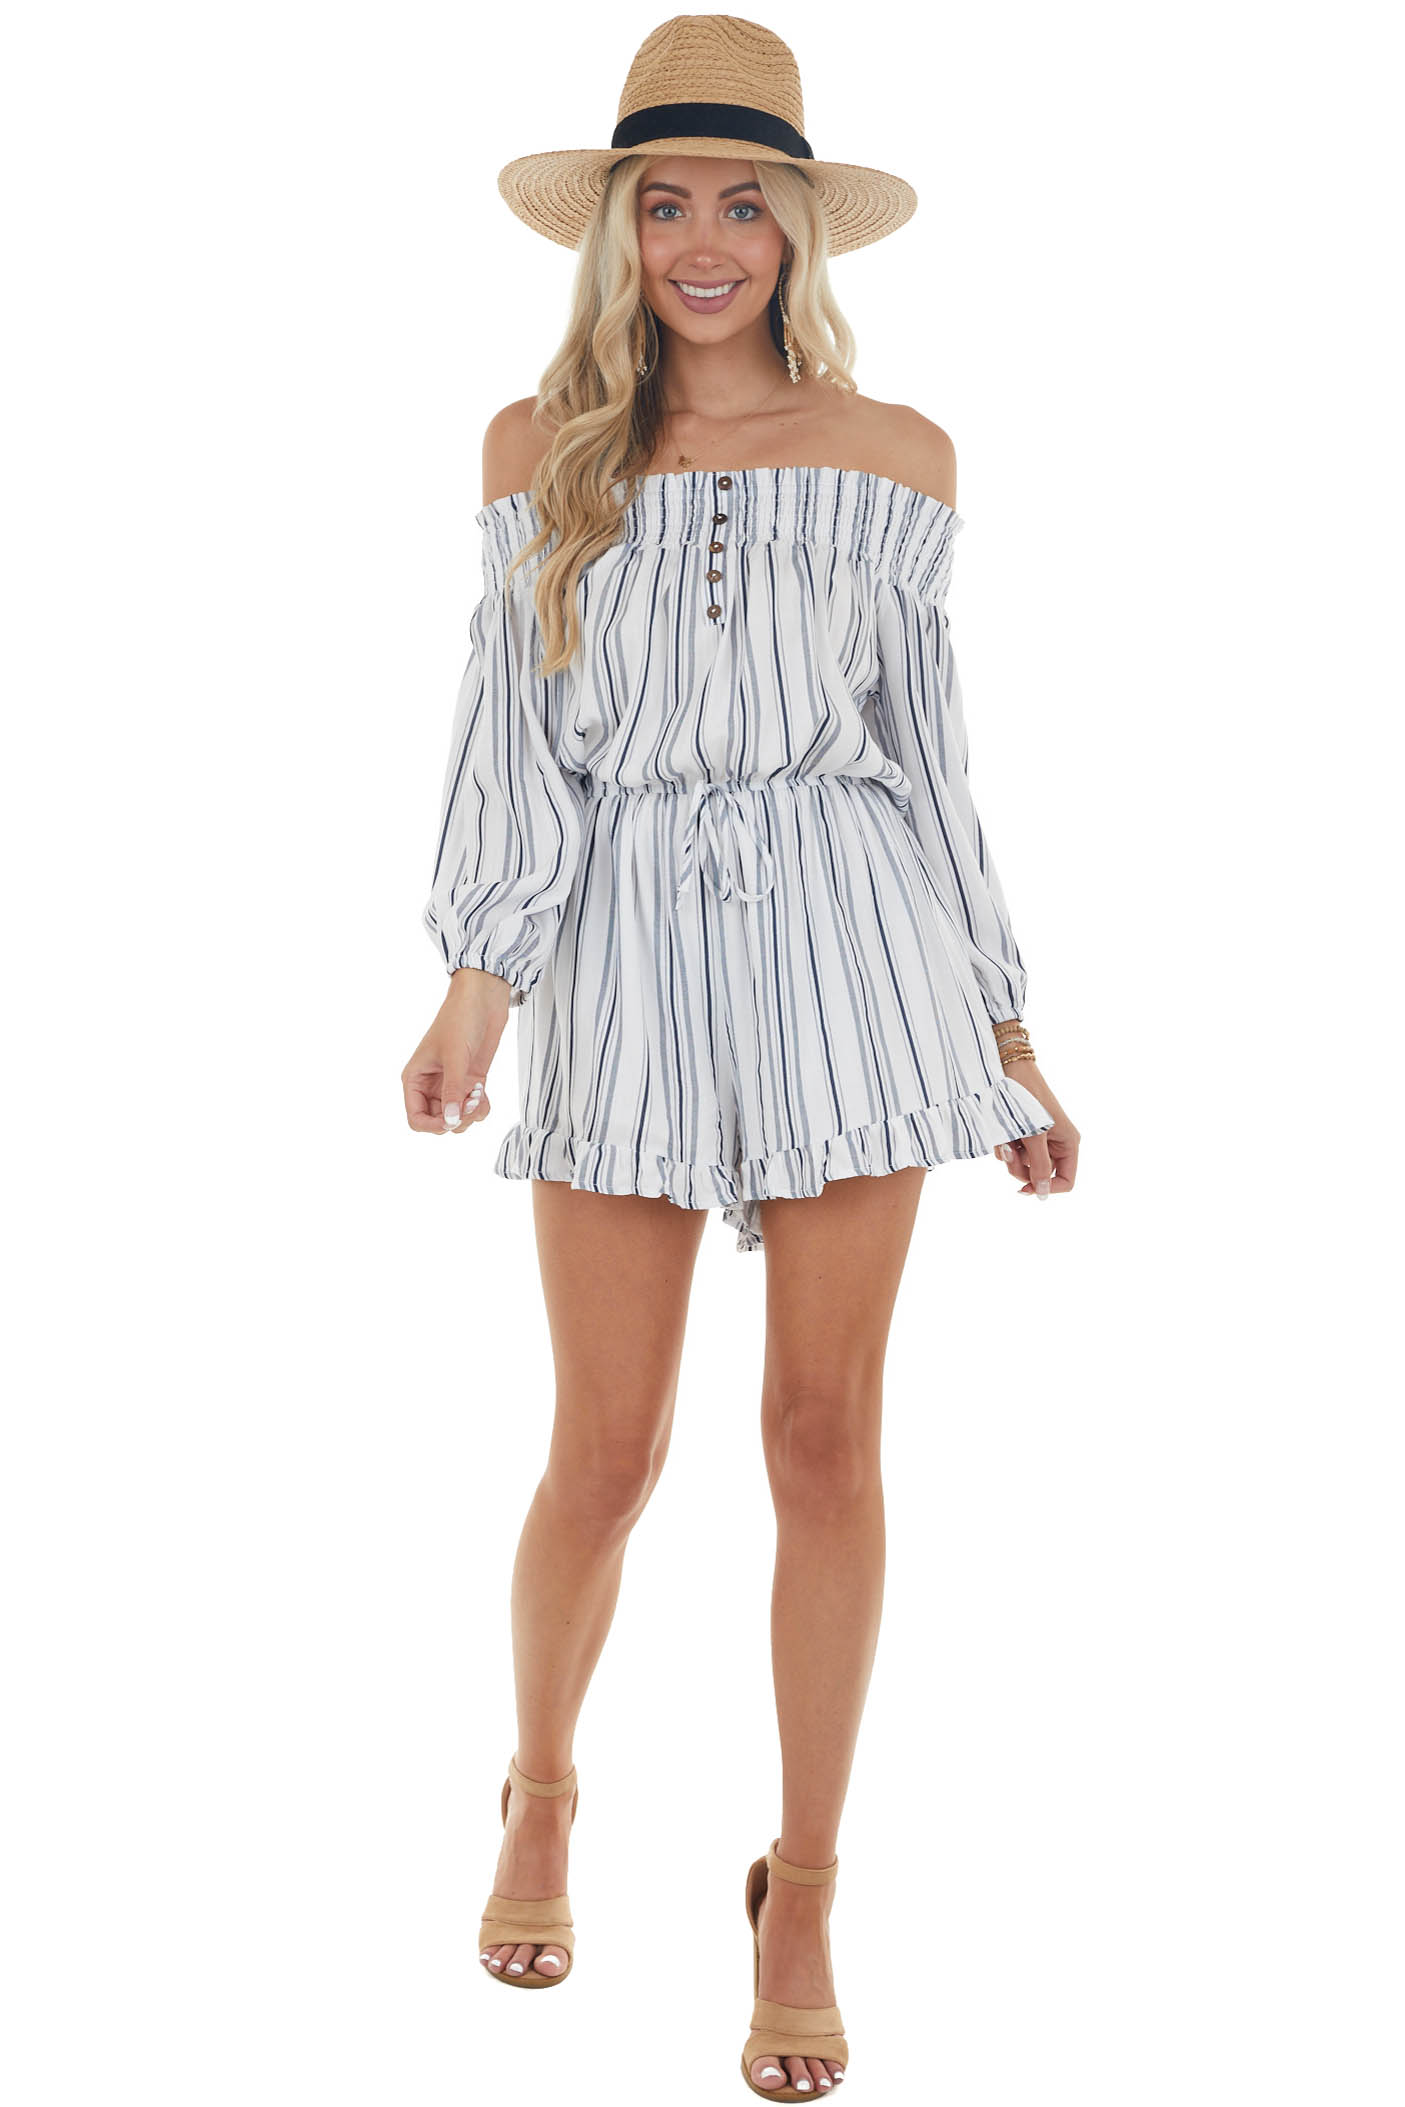 Off White and Navy Striped Romper with Buttons